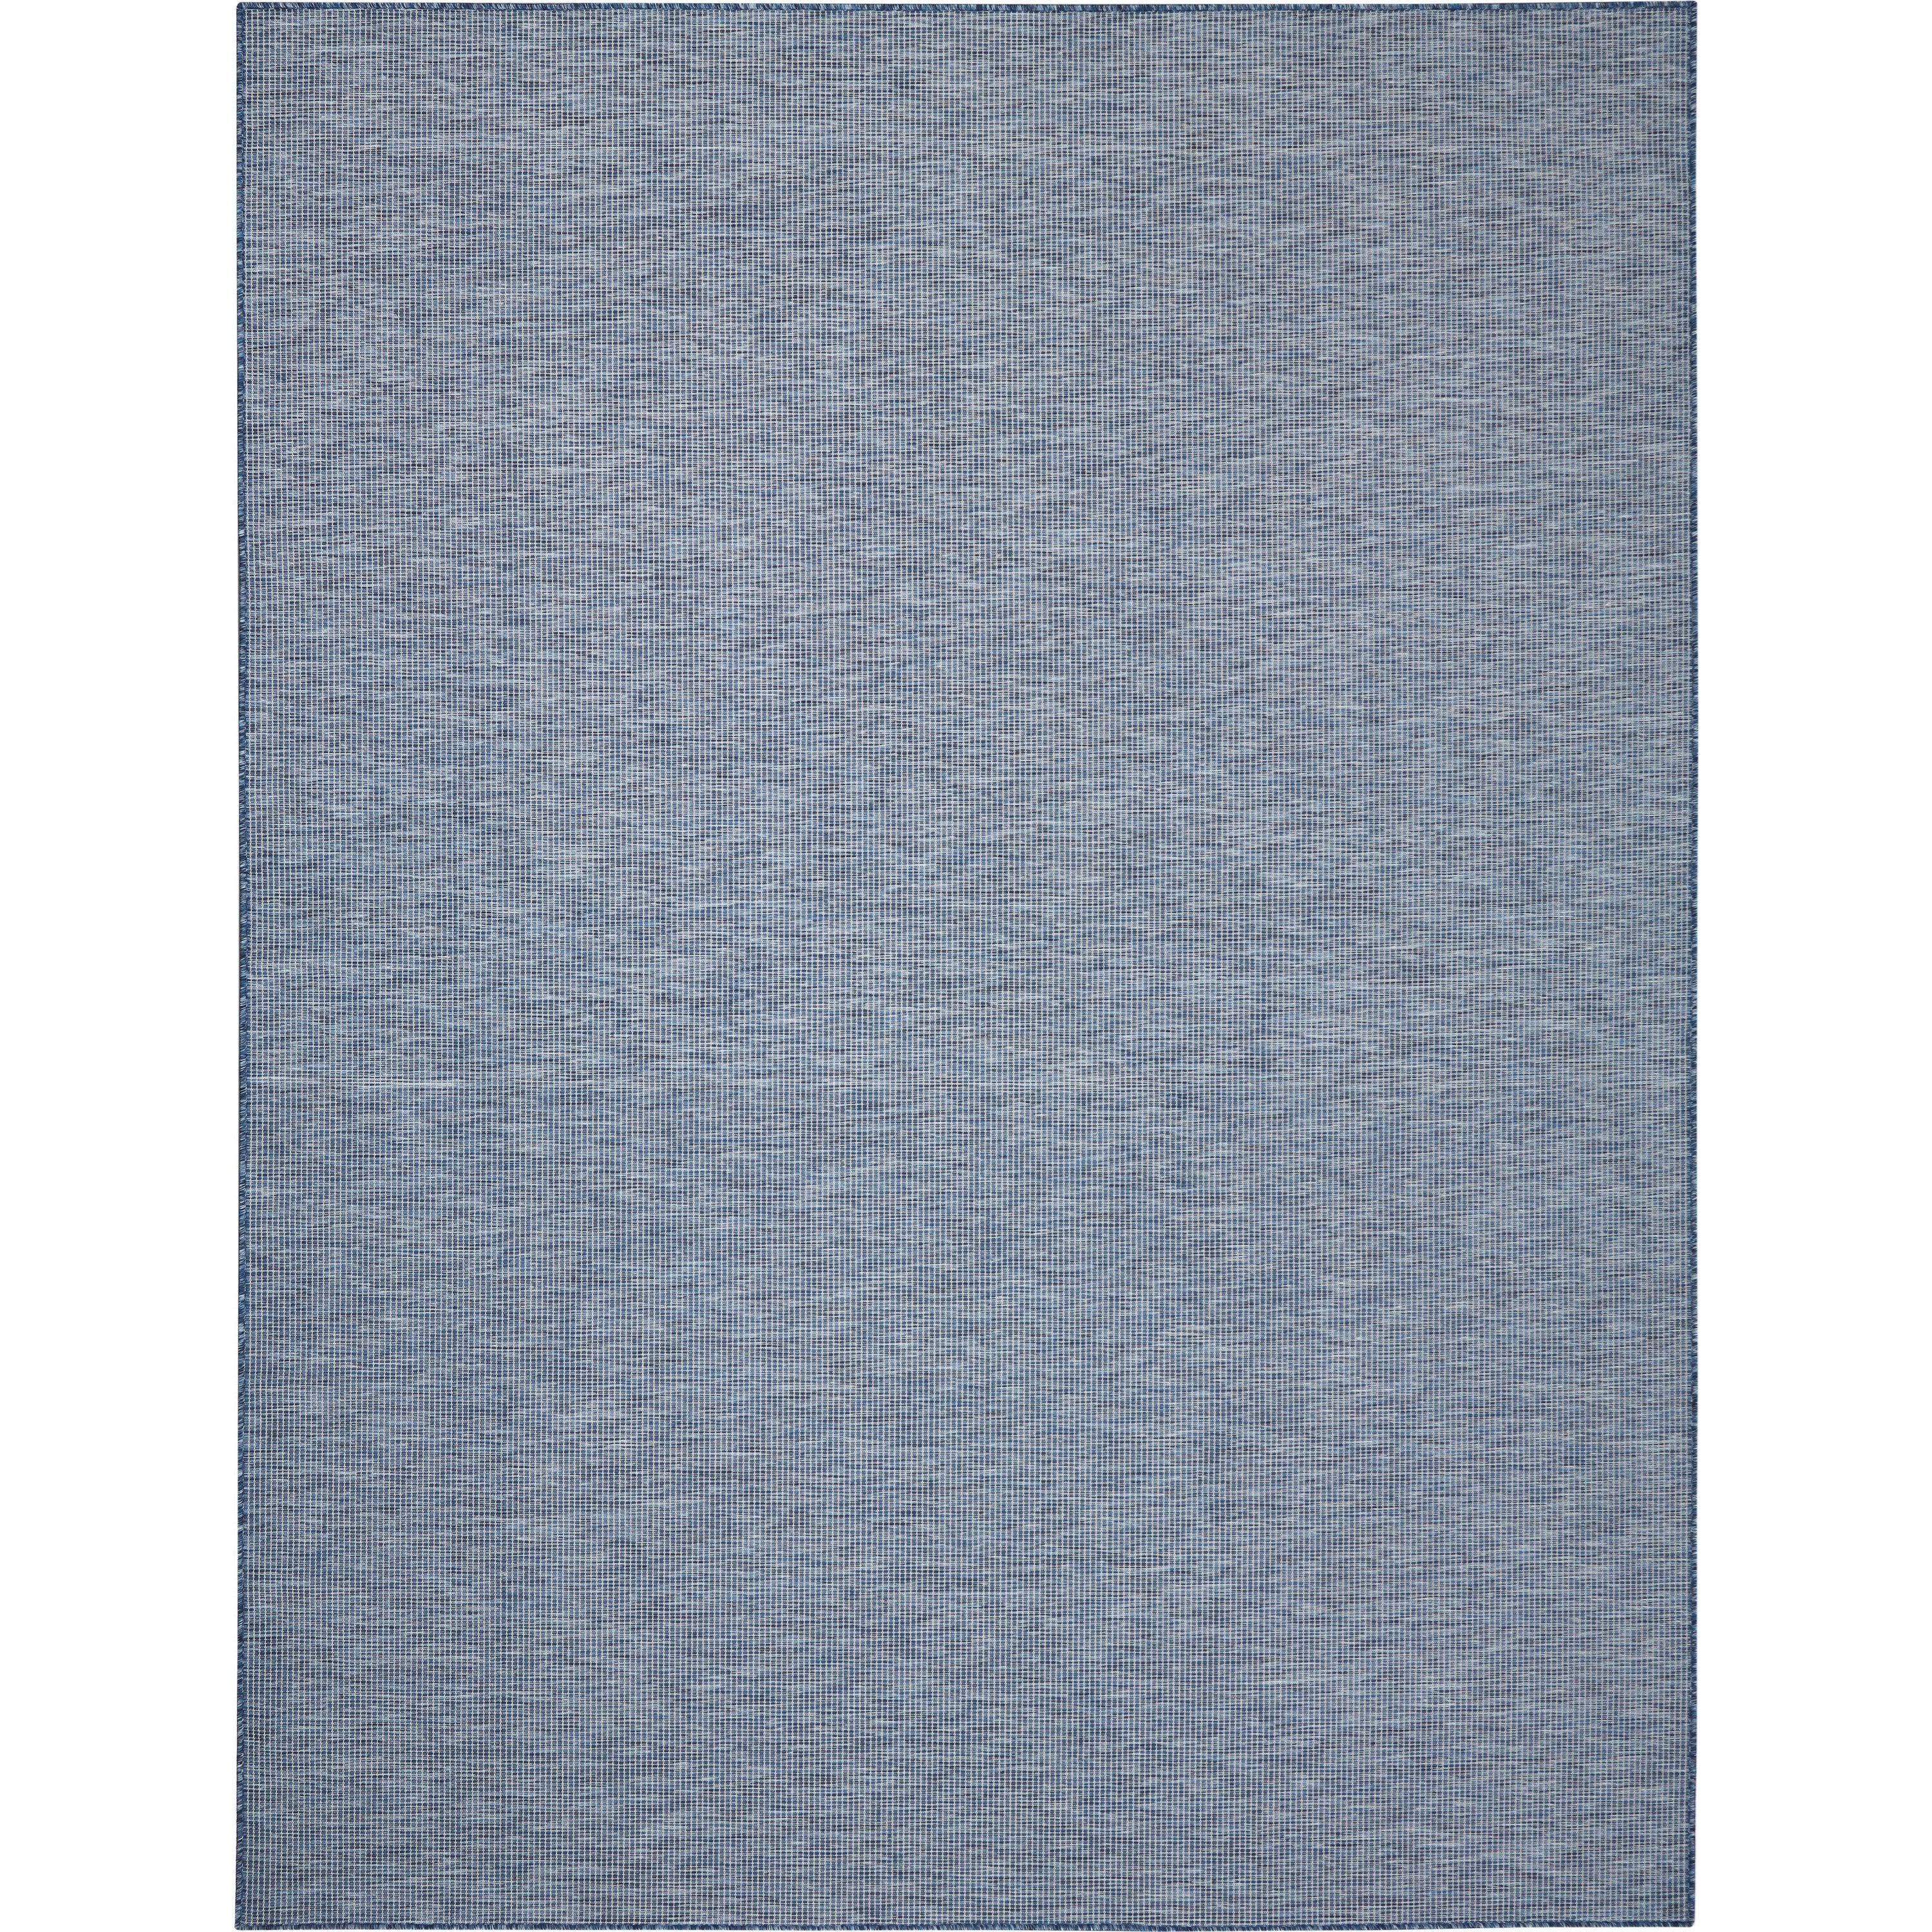 Positano 2020 6' x 9' Rug by Nourison at Home Collections Furniture